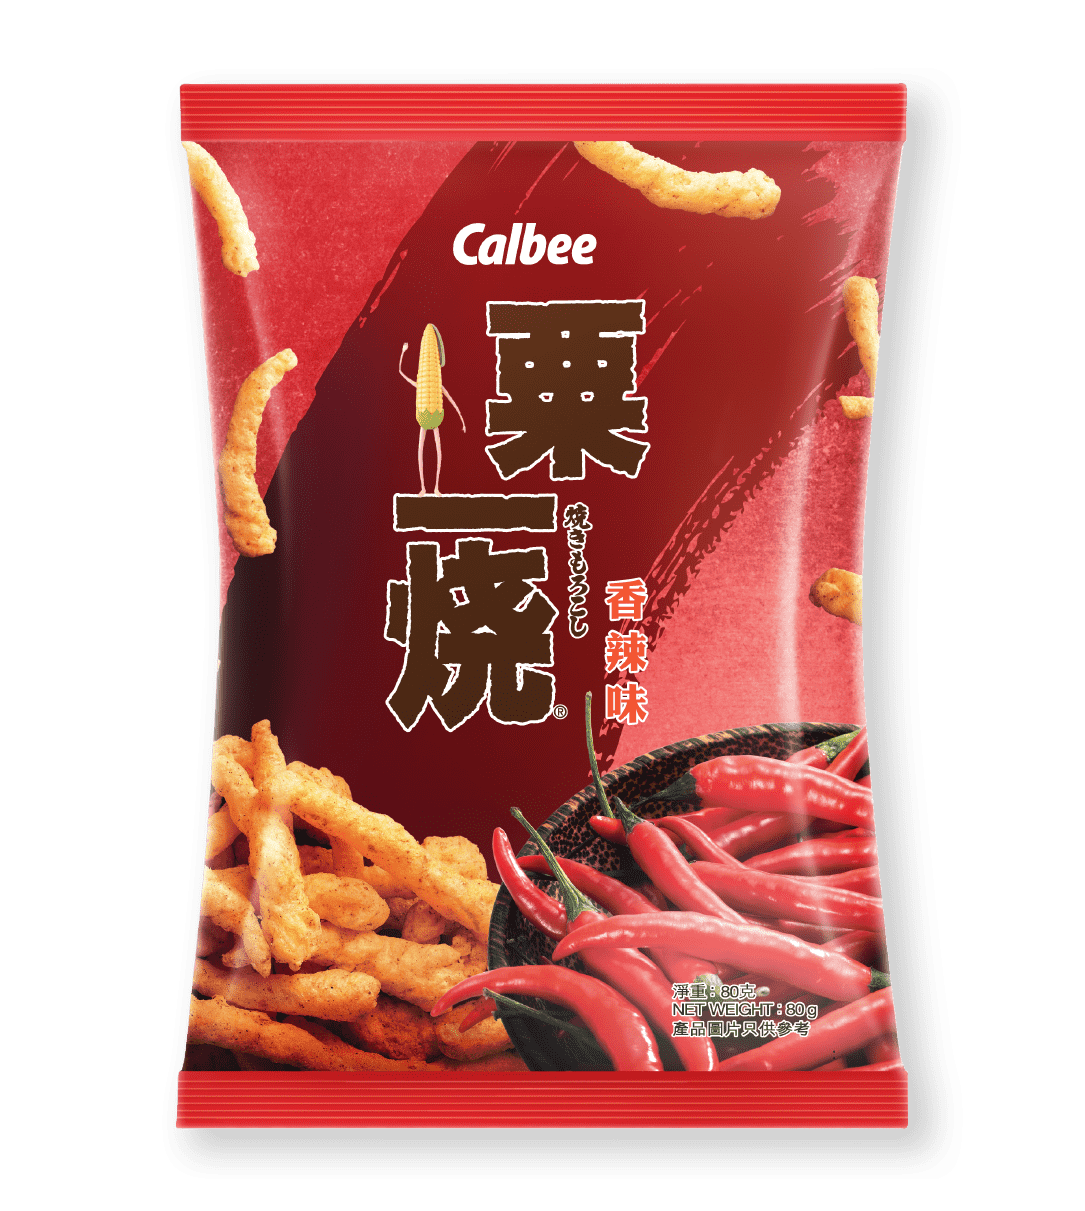 Calbee Australia - World Foods - Grill-A-Corn - Hot & Spicy